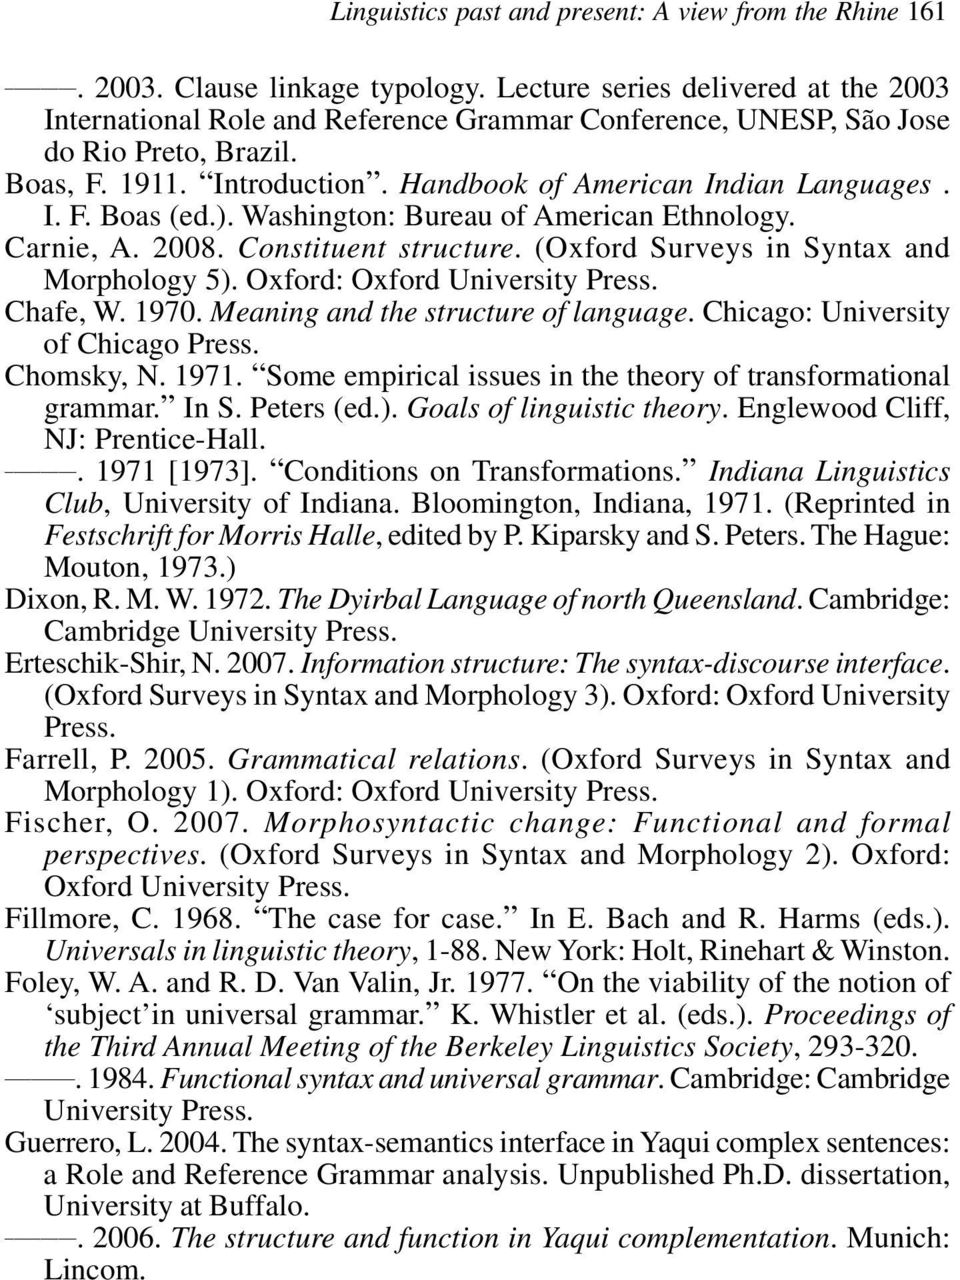 ). Washington: Bureau of American Ethnology. Carnie, A. 2008. Constituent structure. (Oxford Surveys in Syntax and Morphology 5). Oxford: Oxford University Press. Chafe, W. 1970.